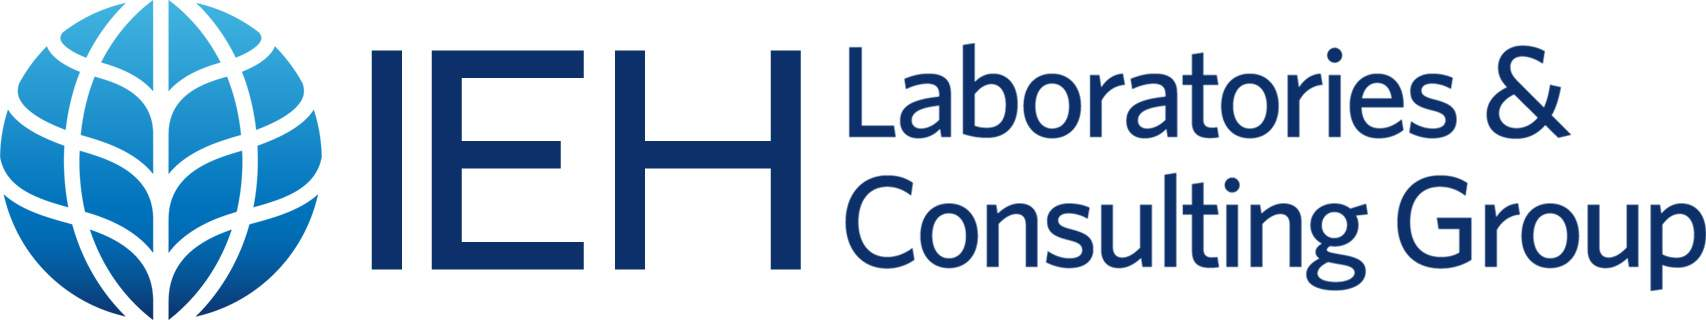 IEH Laboratories & Consulting Group – The Institute for Environmental Health